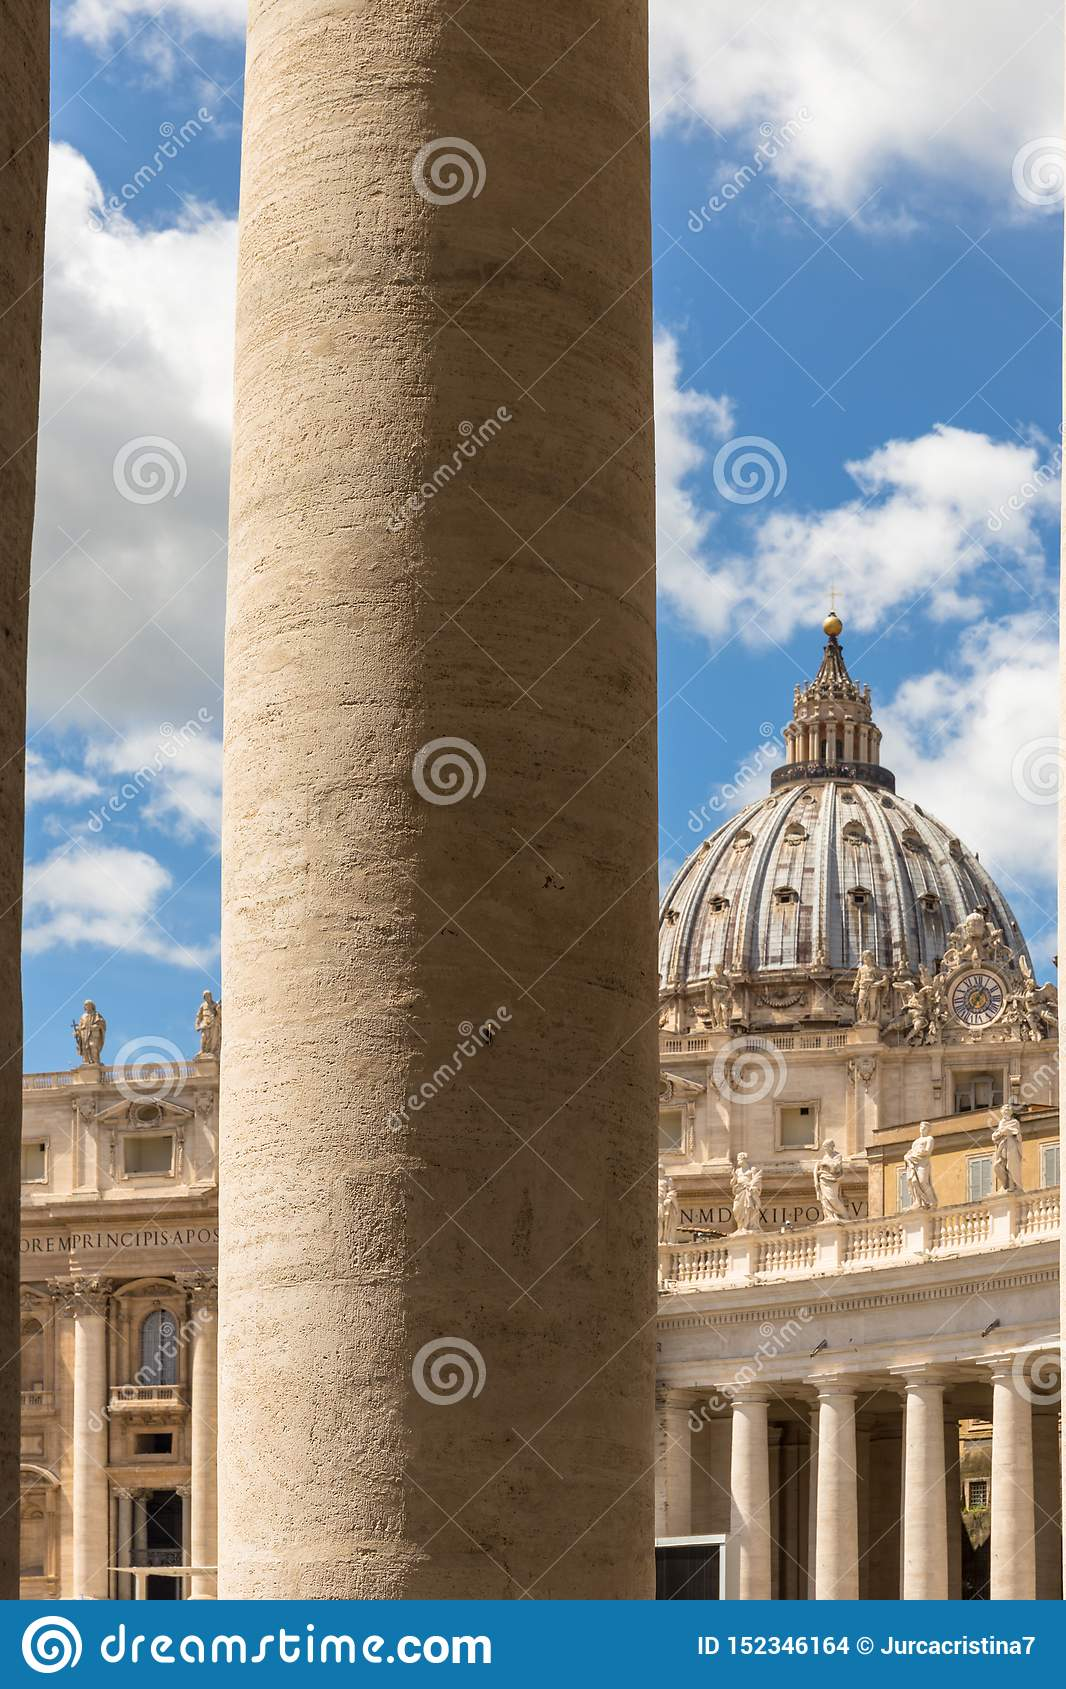 Saint Peter`s Dome seen through the Bernini Colonnade in St. Peter`s Square, Doric column detail.